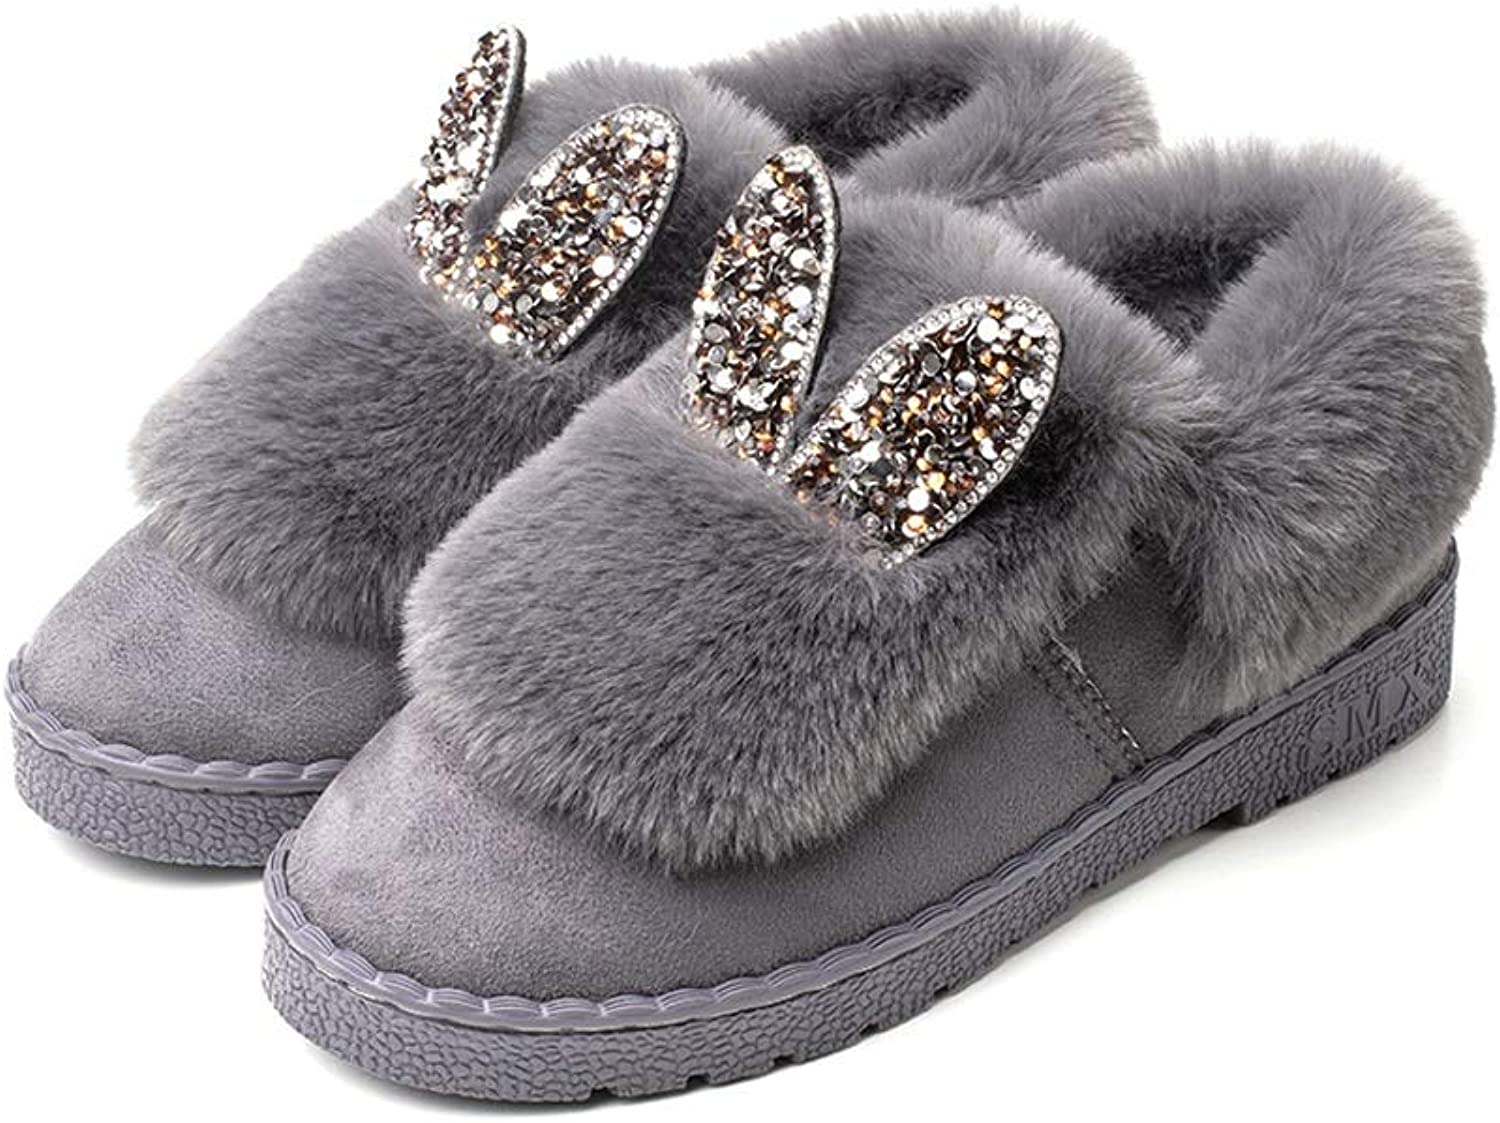 shoes, Cotton Slippers Womens Soft Cotton Boots All Inclusive Flat Heel Anti-Slip Winter House shoes Warm Artificial Fluff Indoor shoes